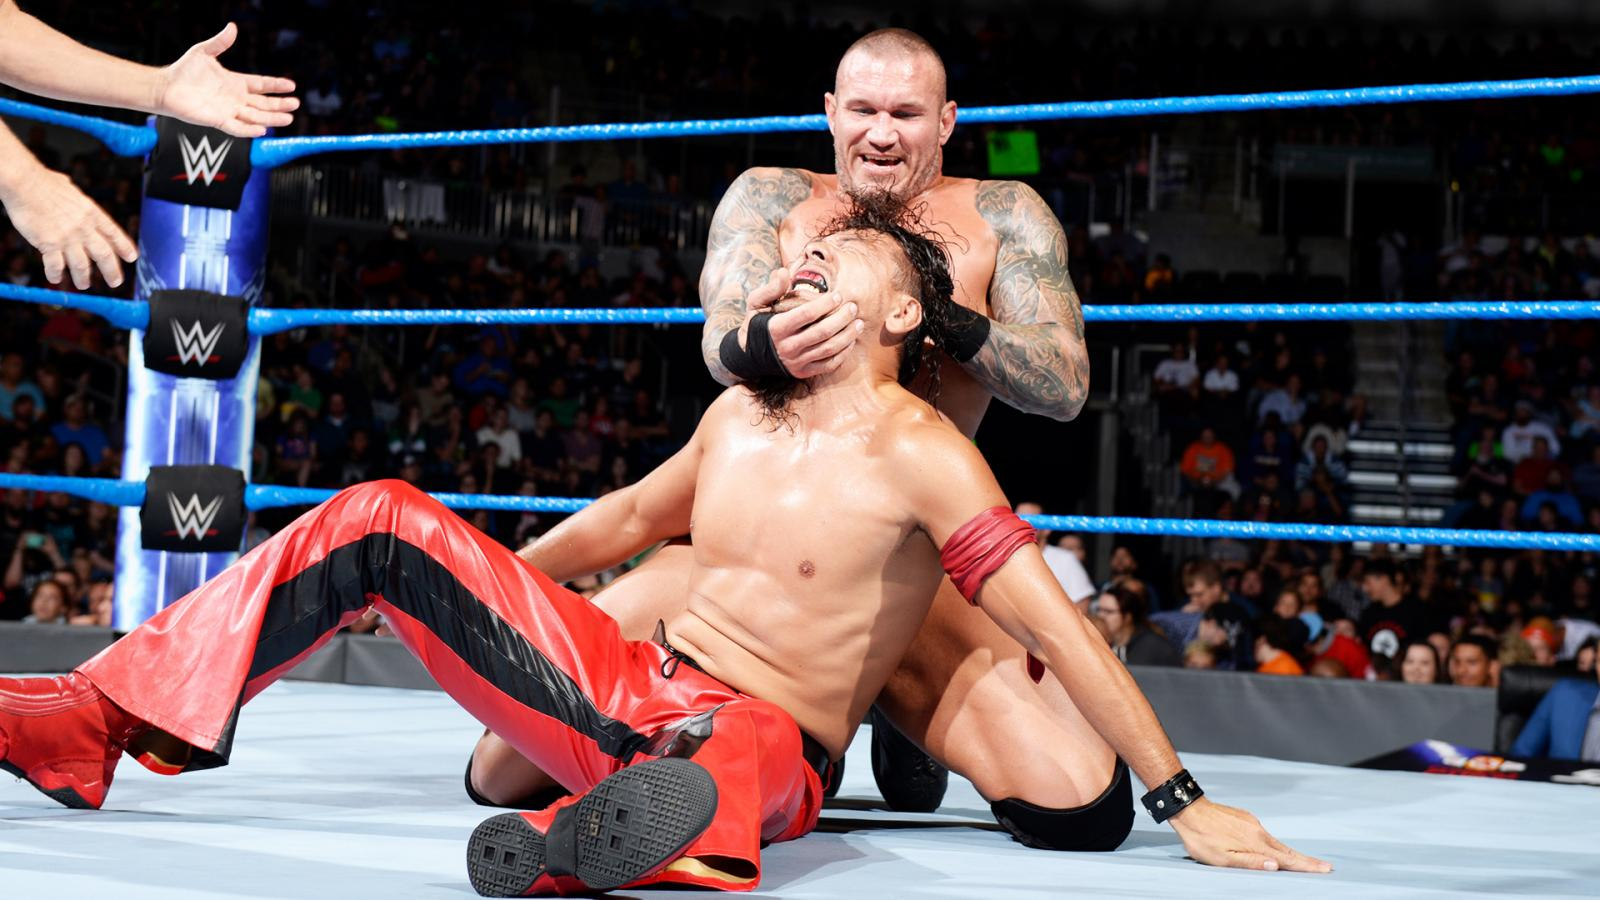 SmackDown Live Moments from Sioux Falls